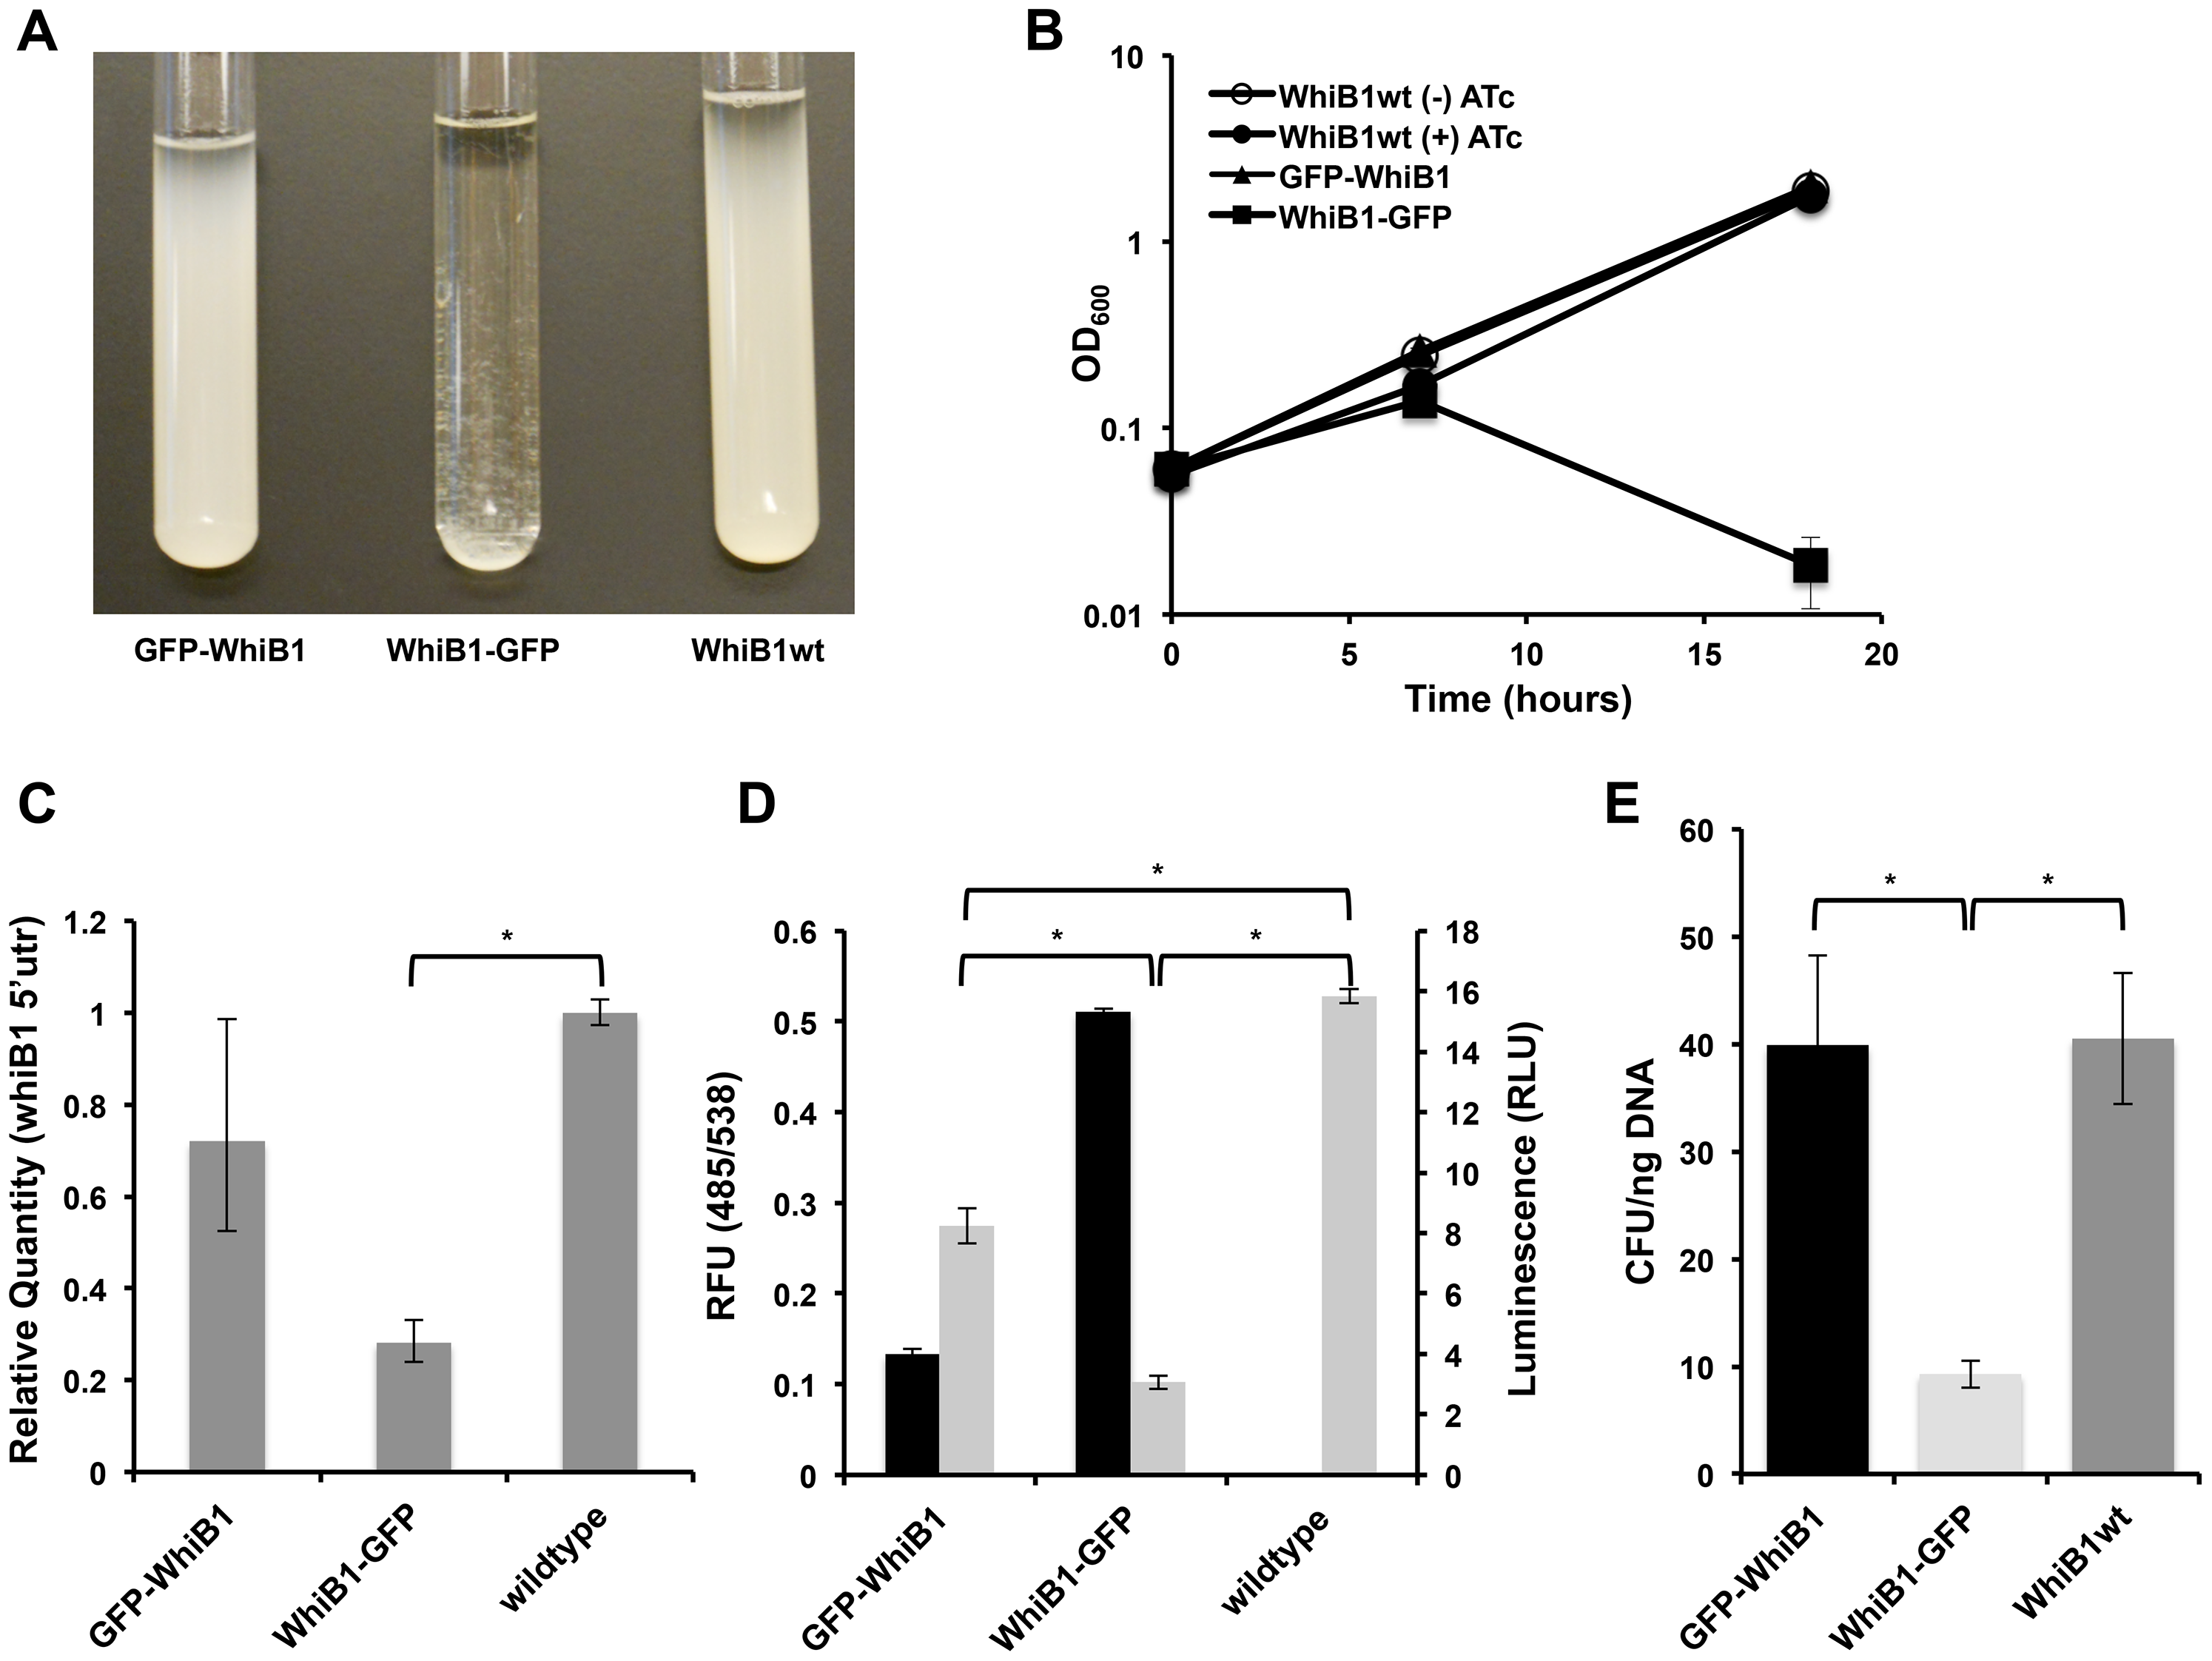 Blocking Clp-dependent degradation of WhiB1 is toxic in mycobacteria.